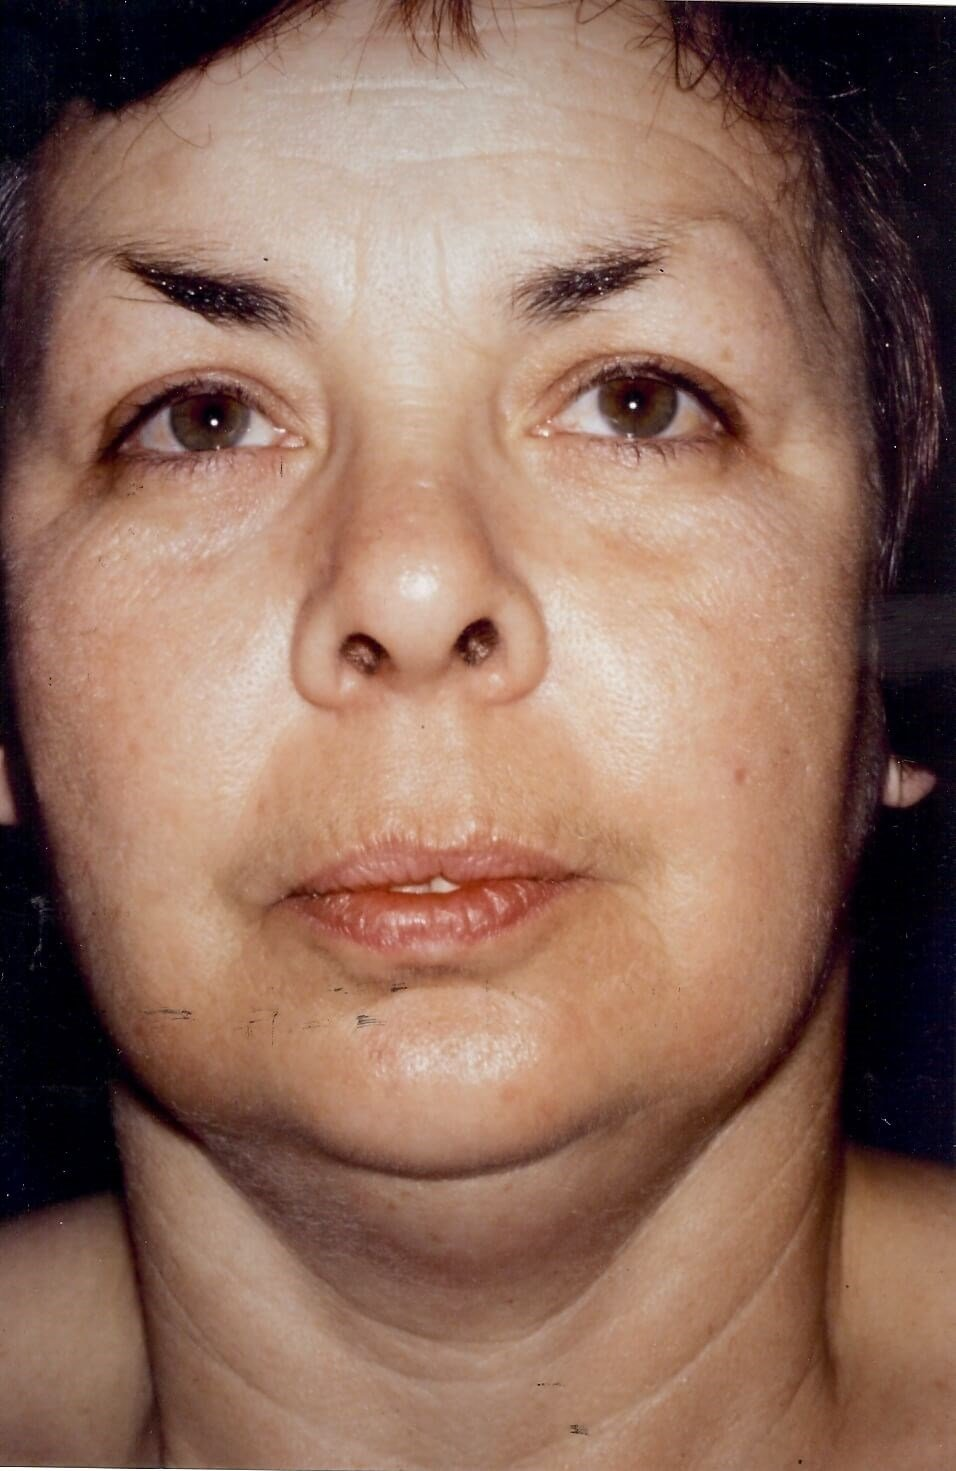 Dr. Bunkis Facial Contouring Before Front View